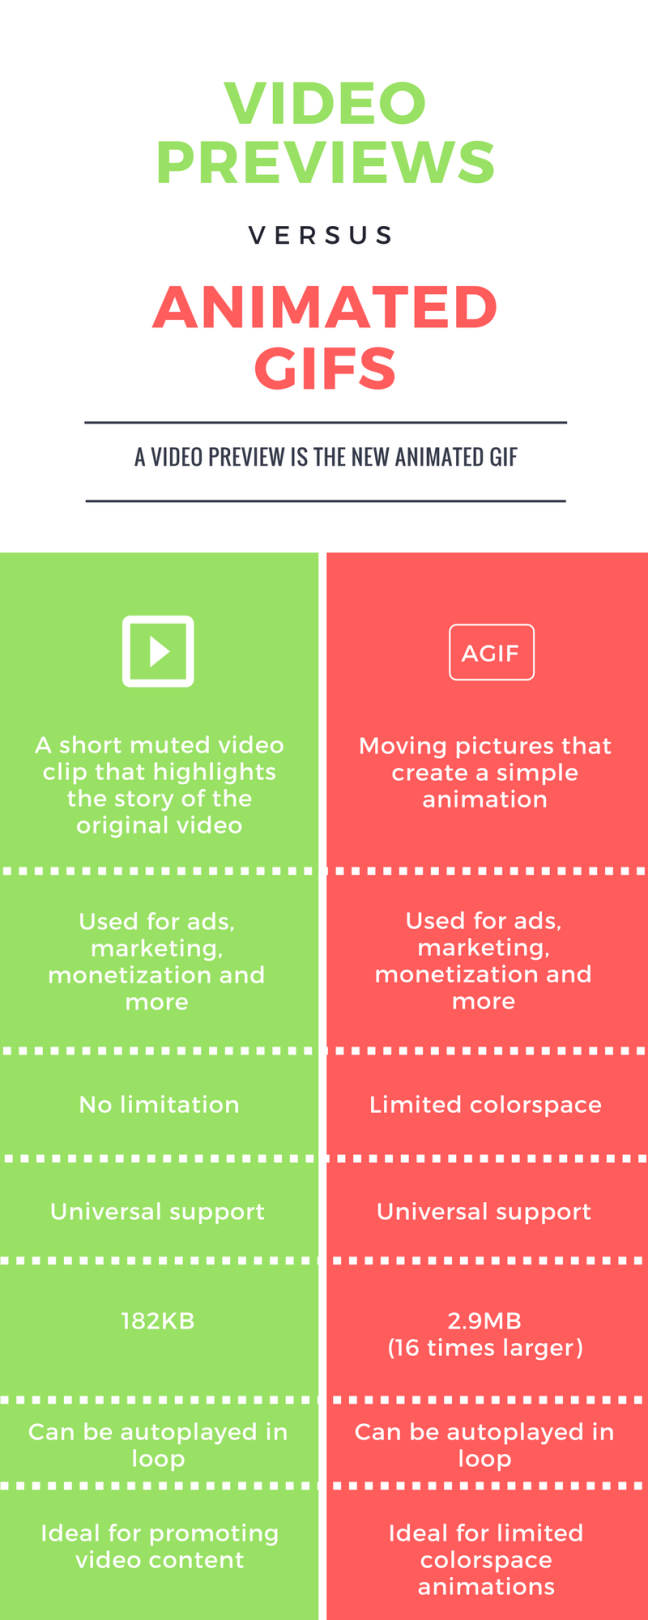 AGIF vs video preview